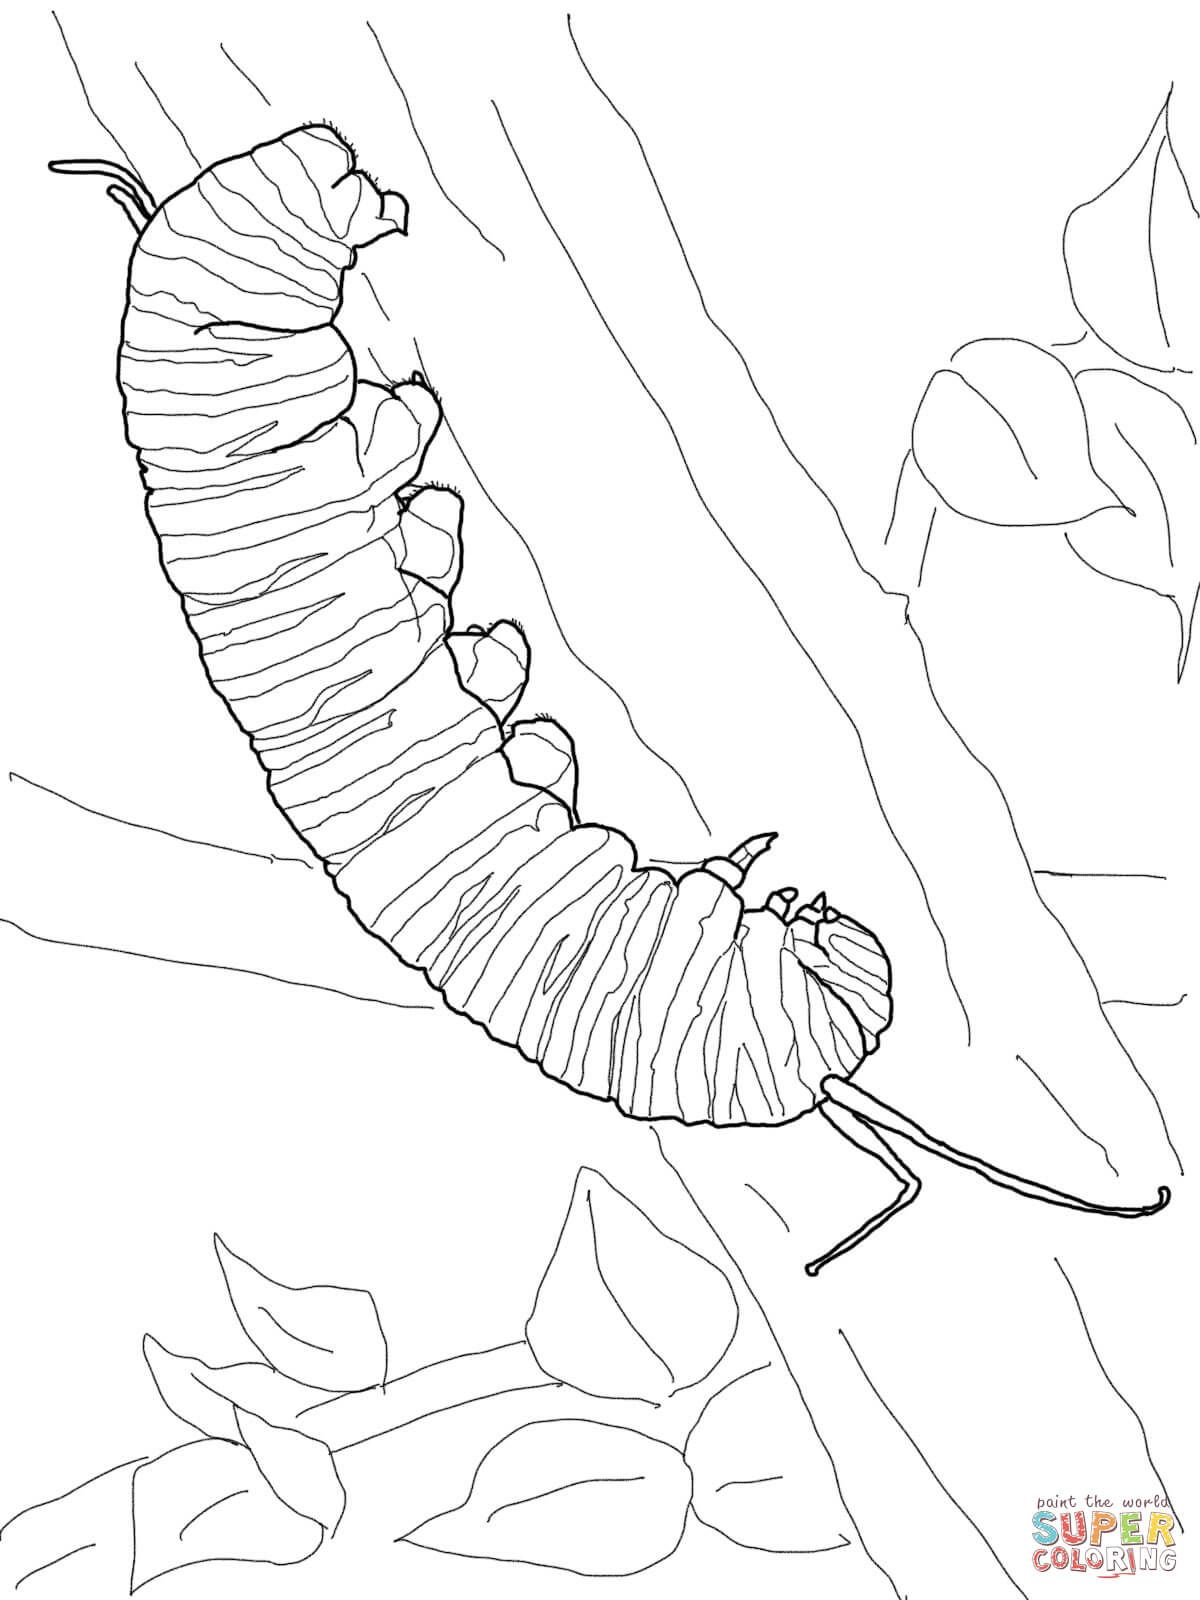 Monarch Caterpillar coloring page | Free Printable Coloring Pages ...